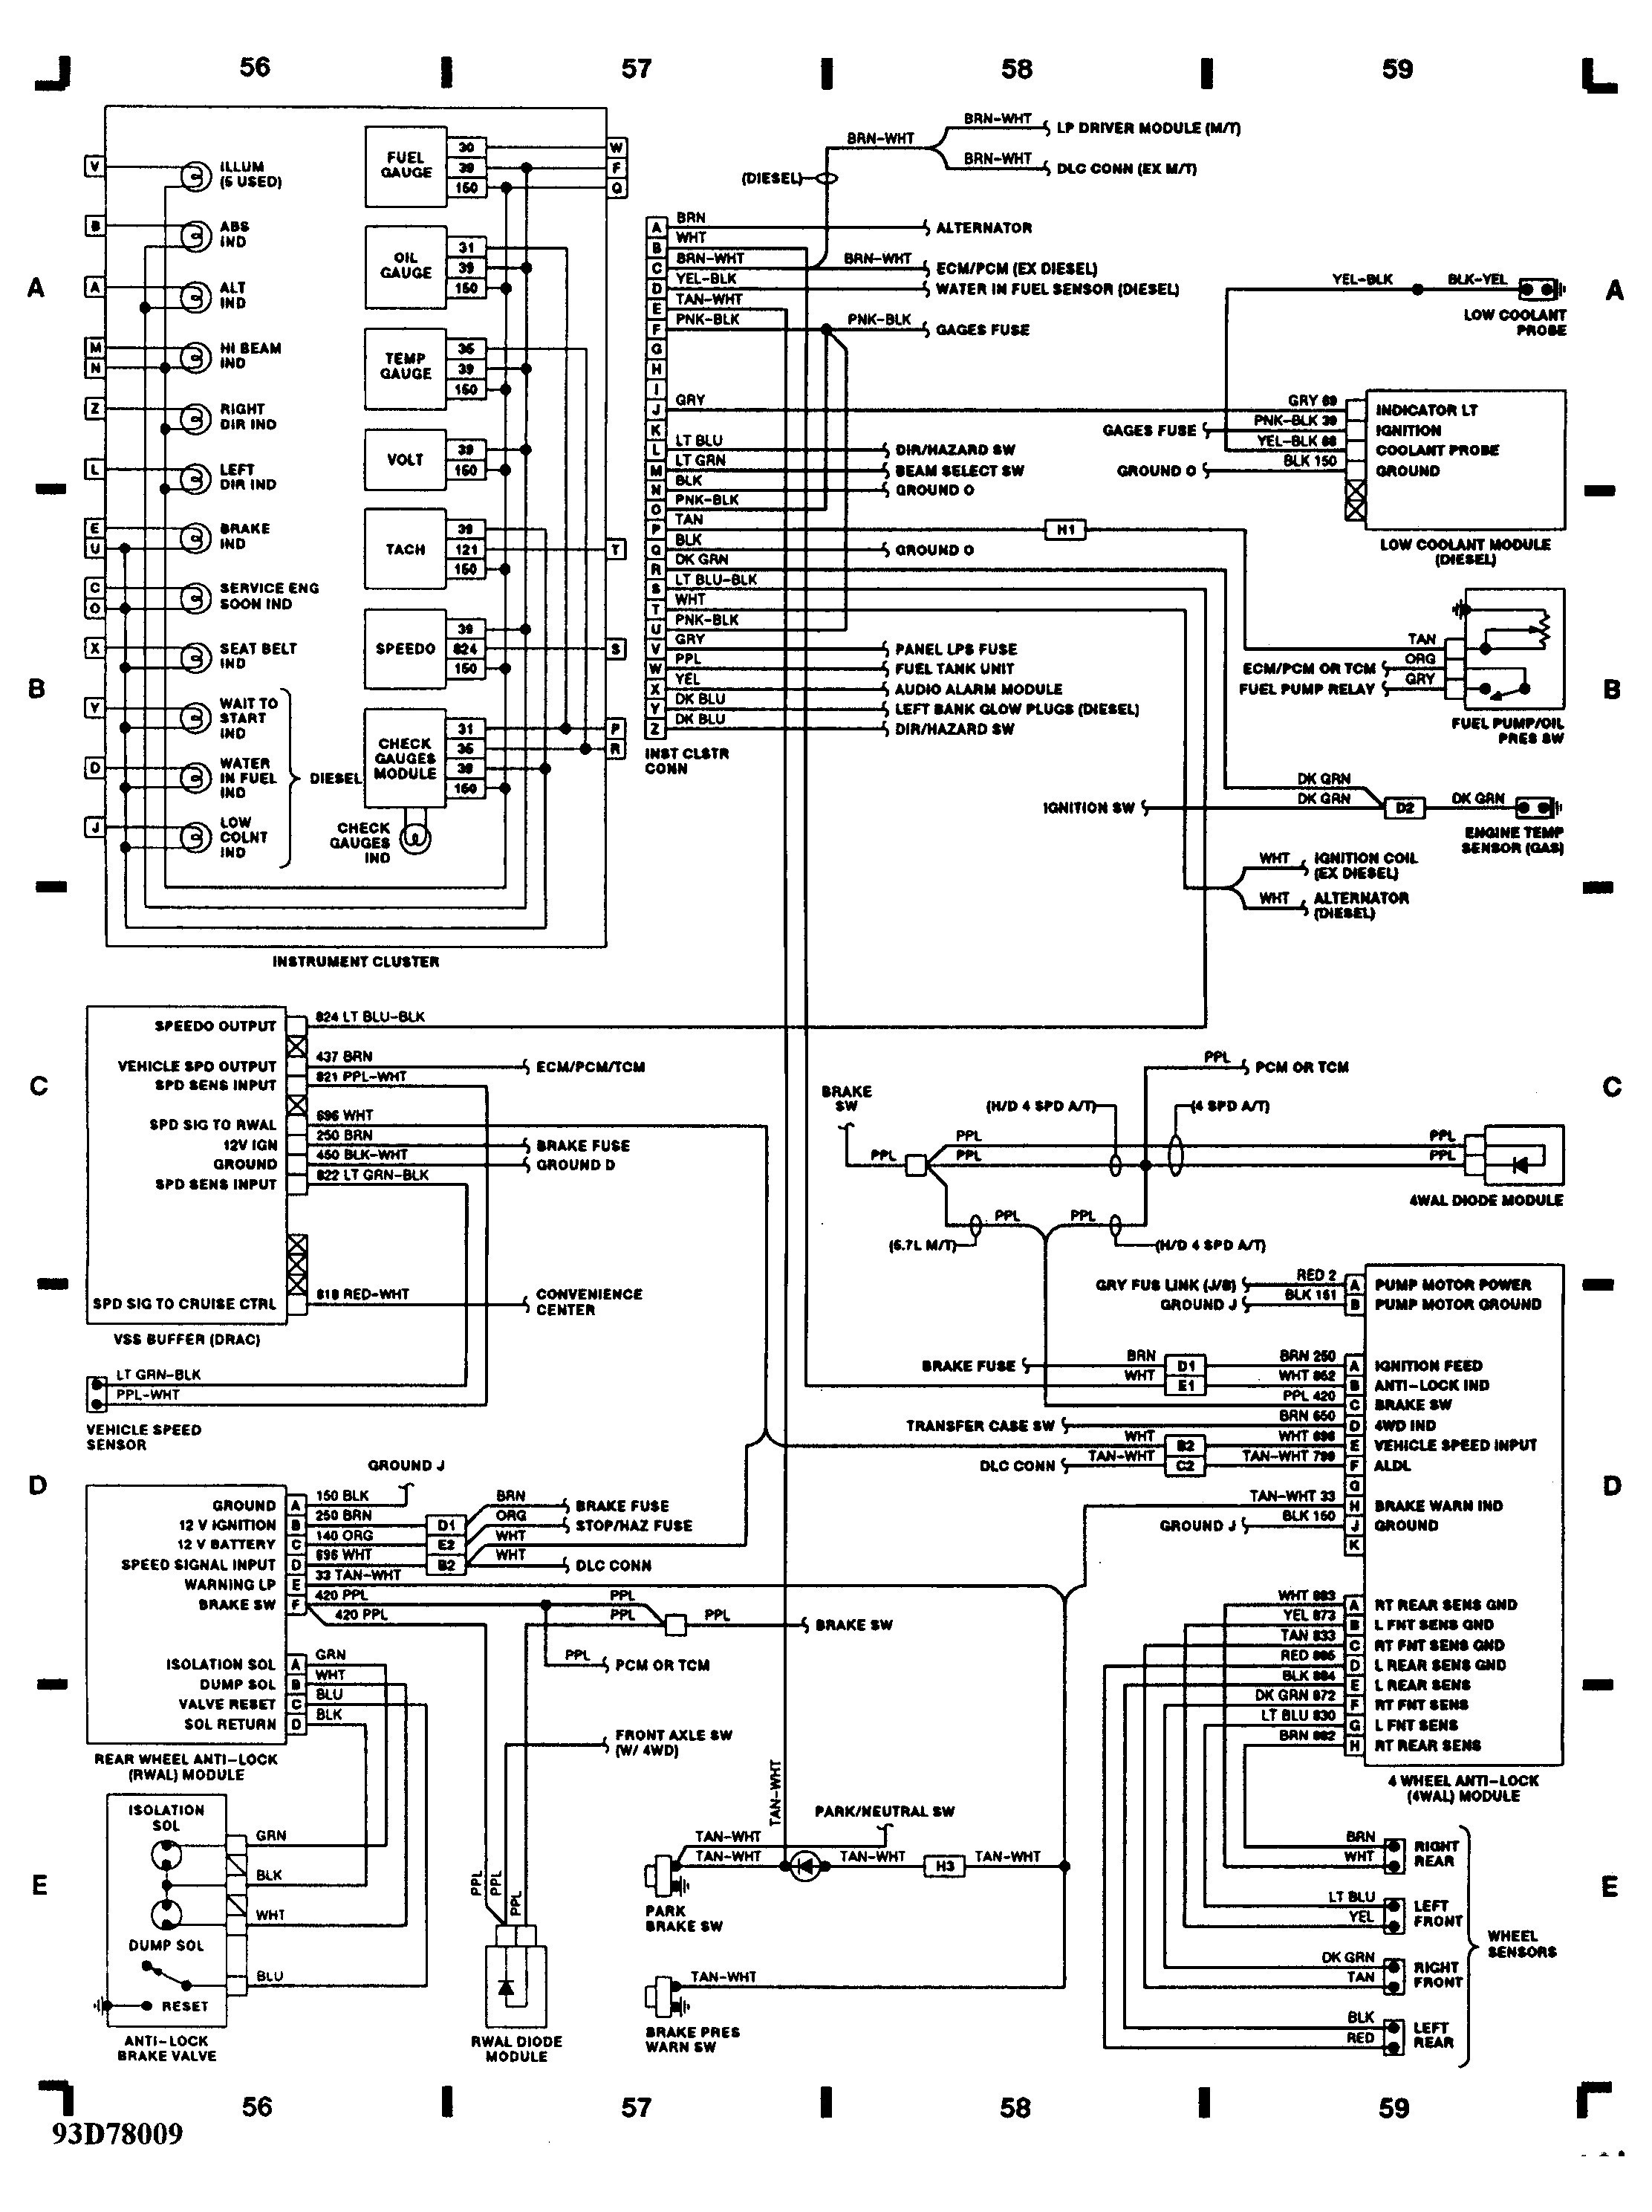 gm 5 3l engine diagram wiring diagram completed GM Family 0 Engine